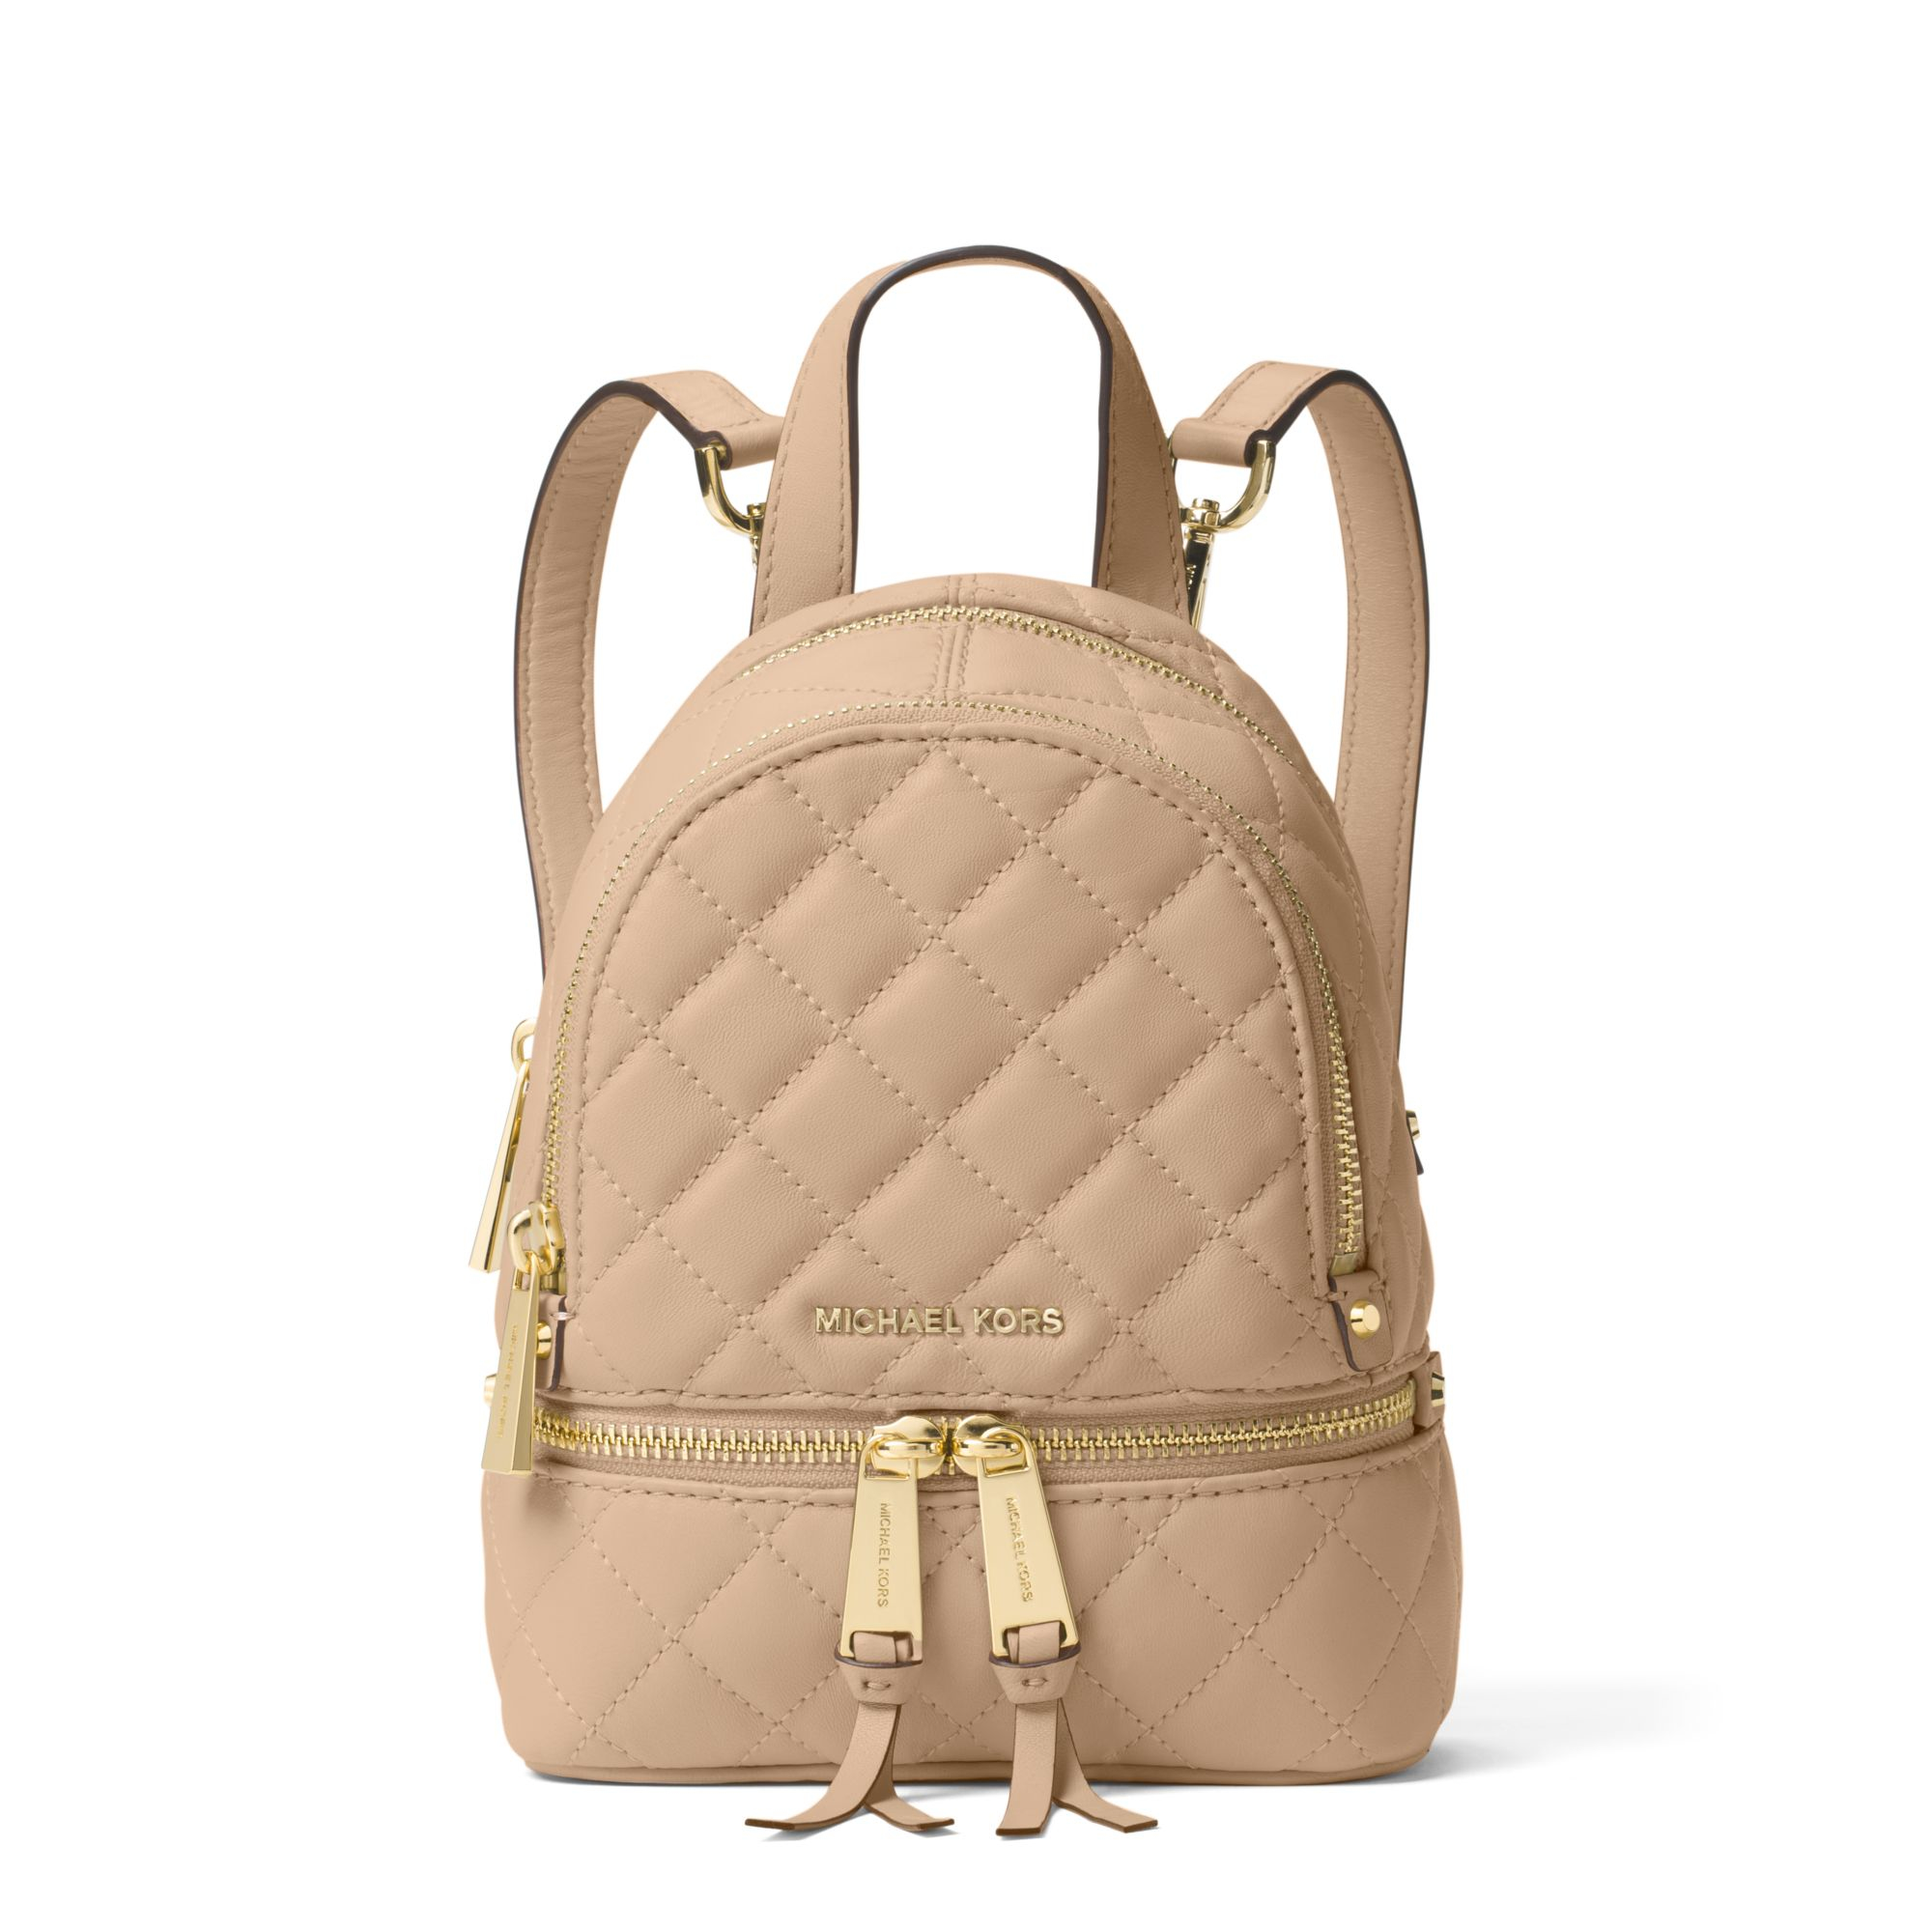 70d2846667af Michael Kors Rhea Extra-small Quilted-leather Backpack in Natural - Lyst